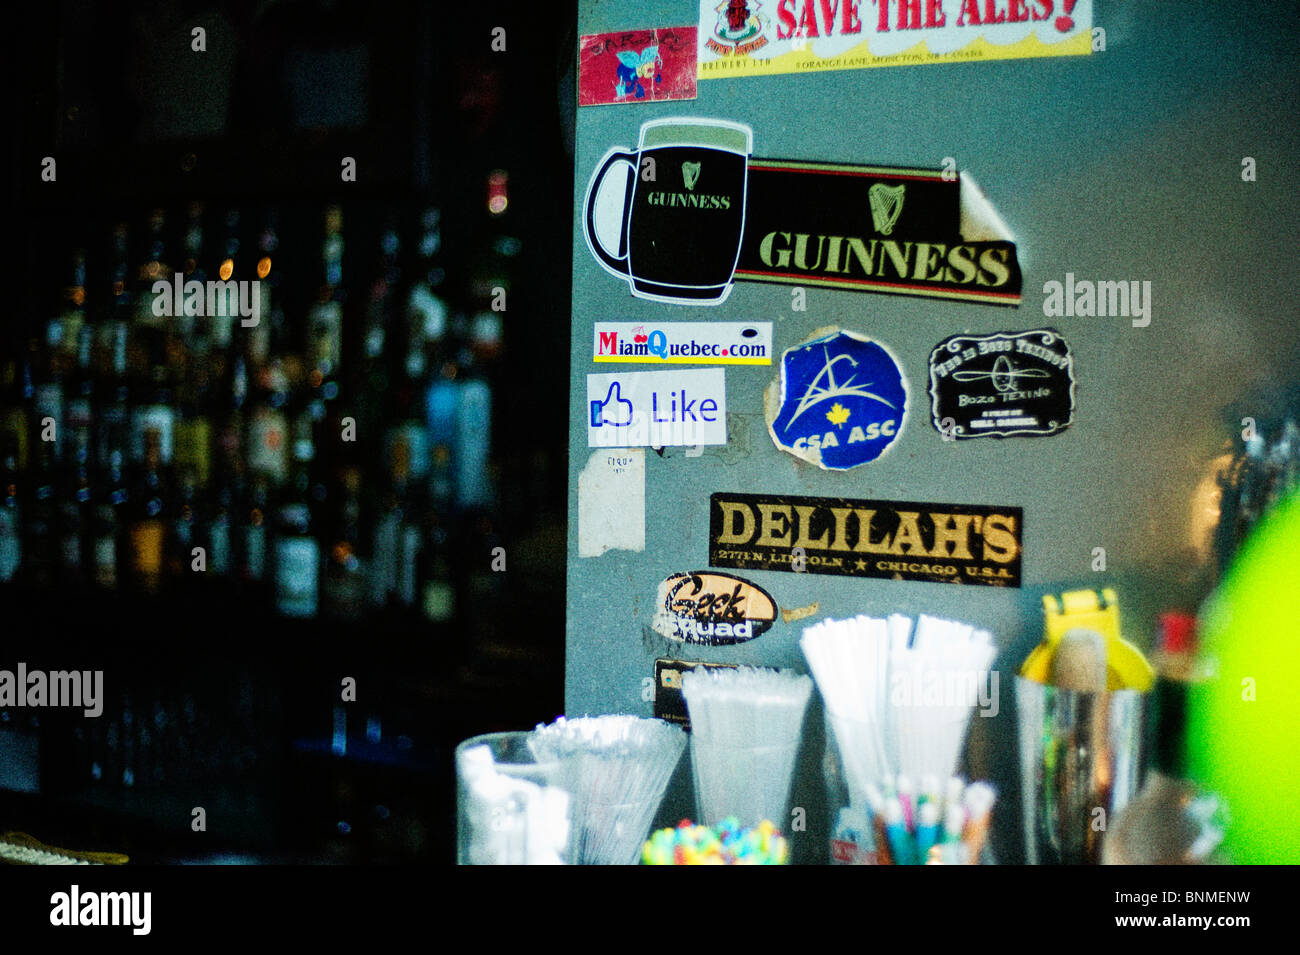 Stickers on bar cooler with rows of bottles behind bar. - Stock Image